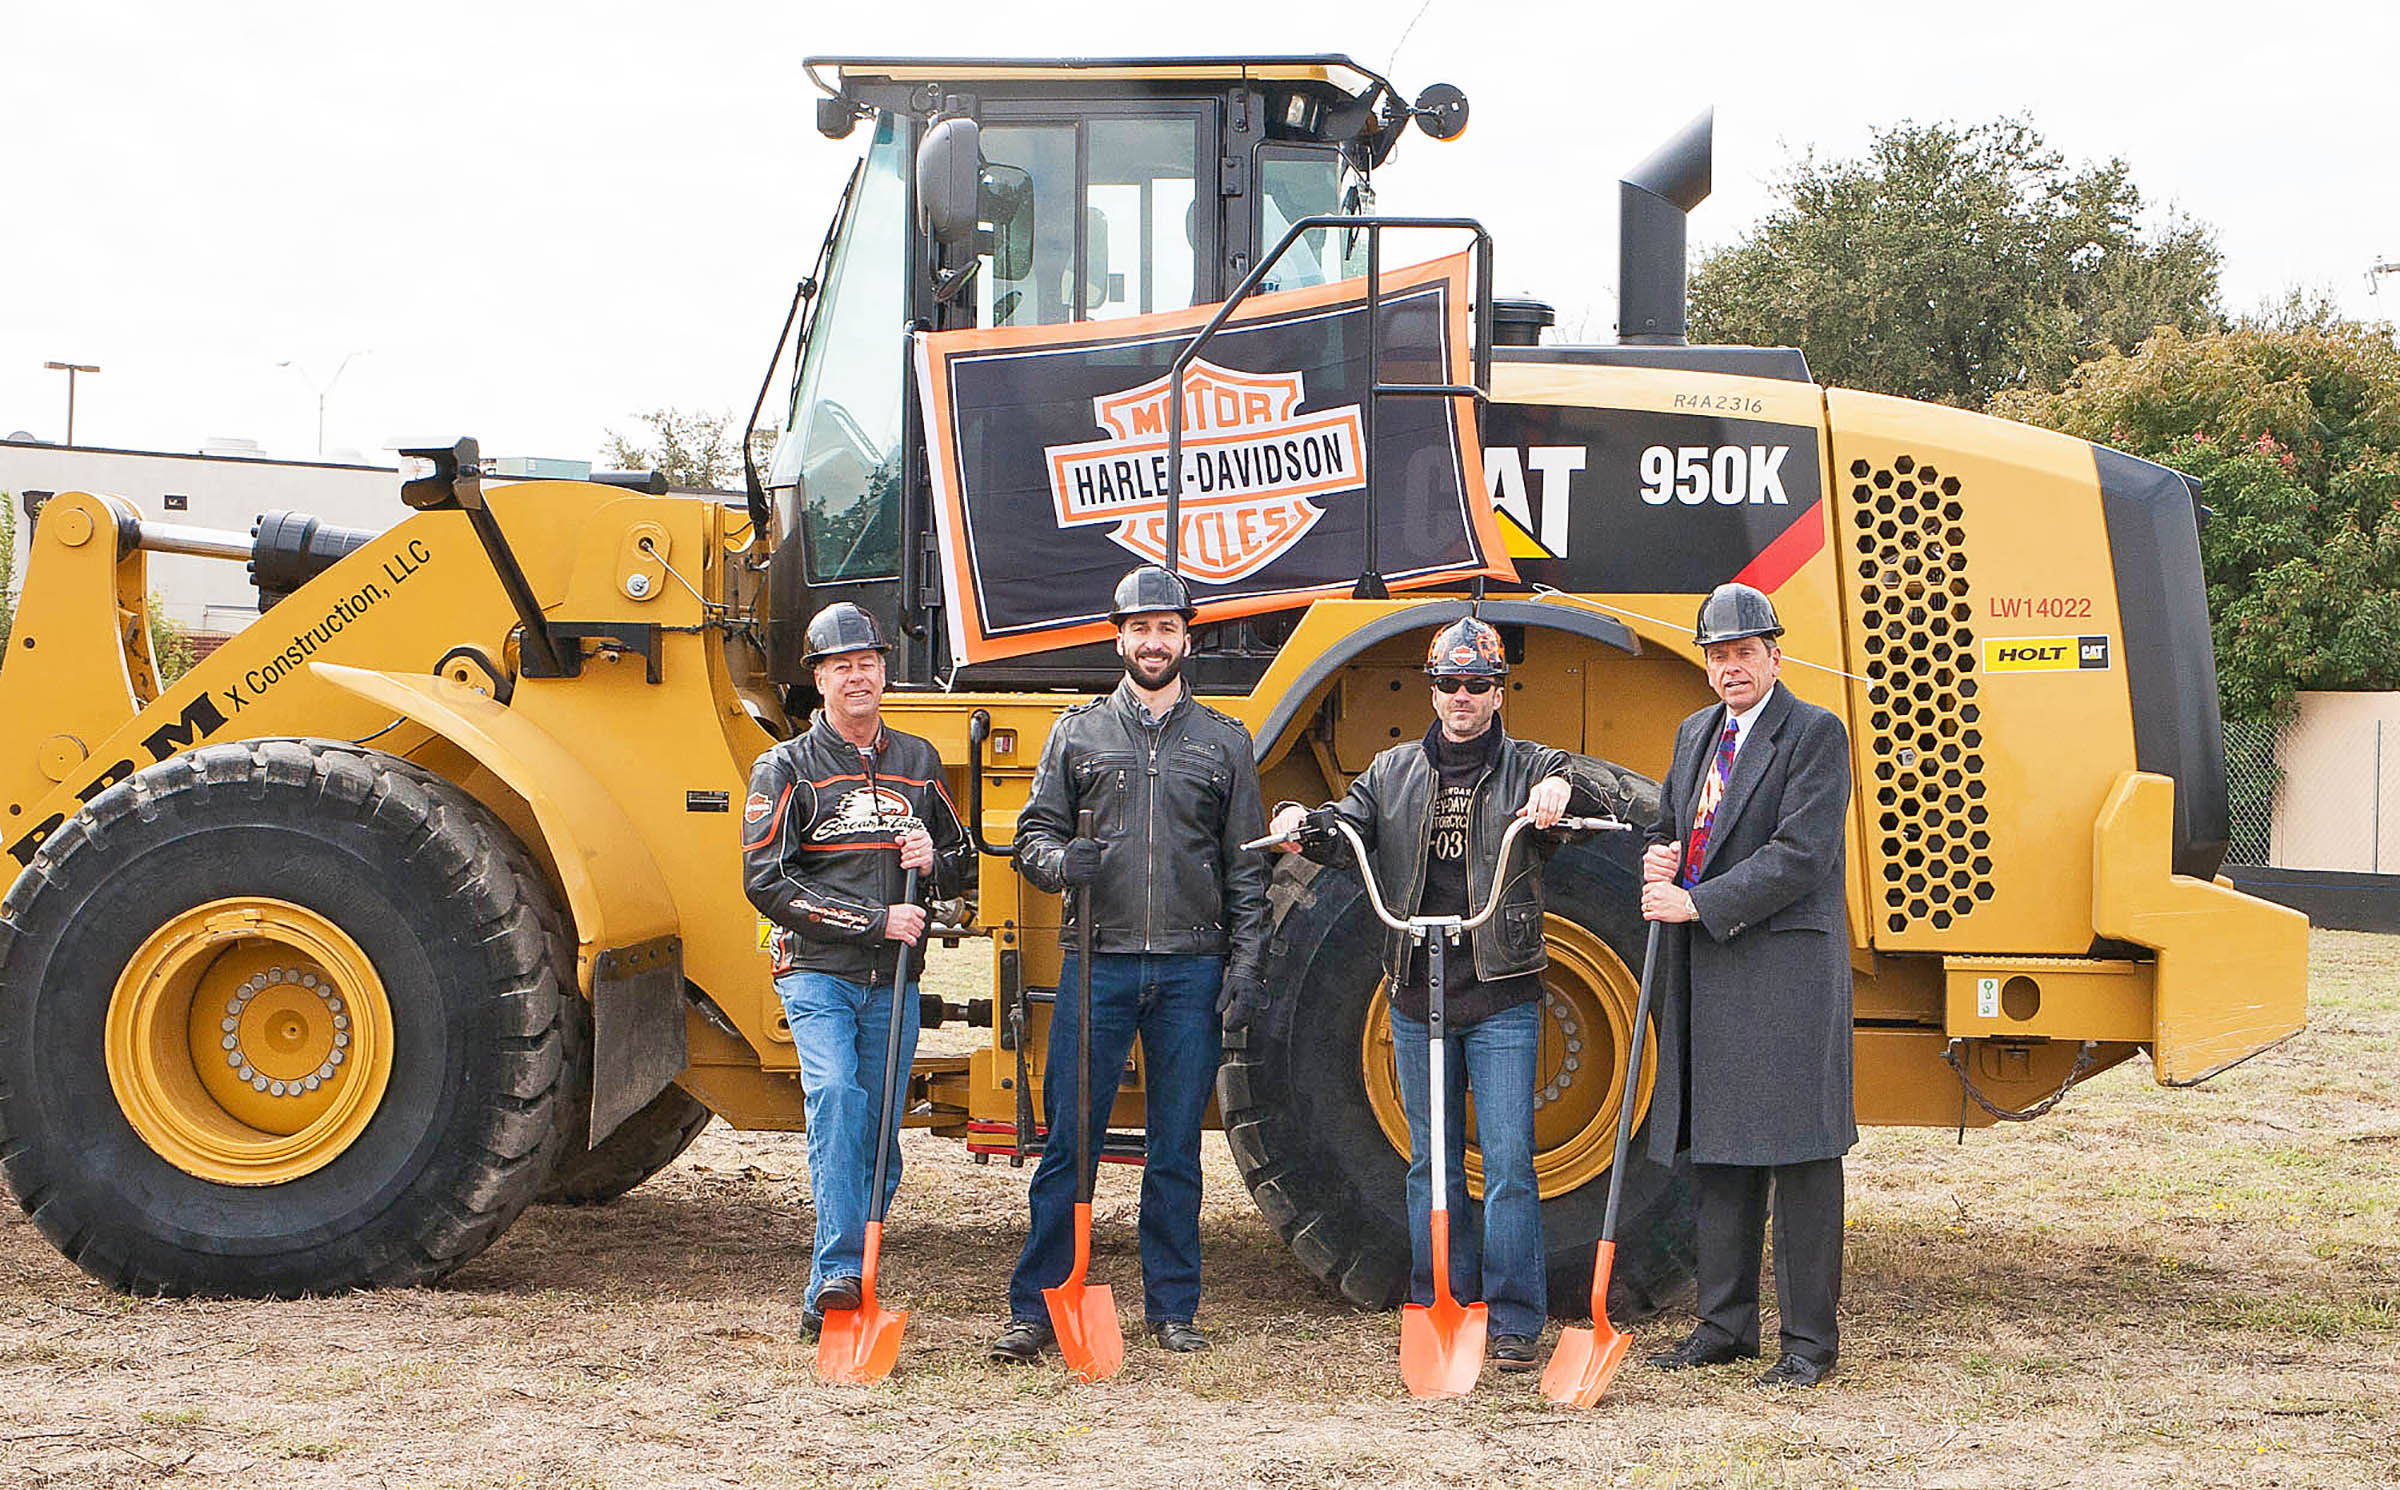 texas h-d celebrates ground breaking | powersports business